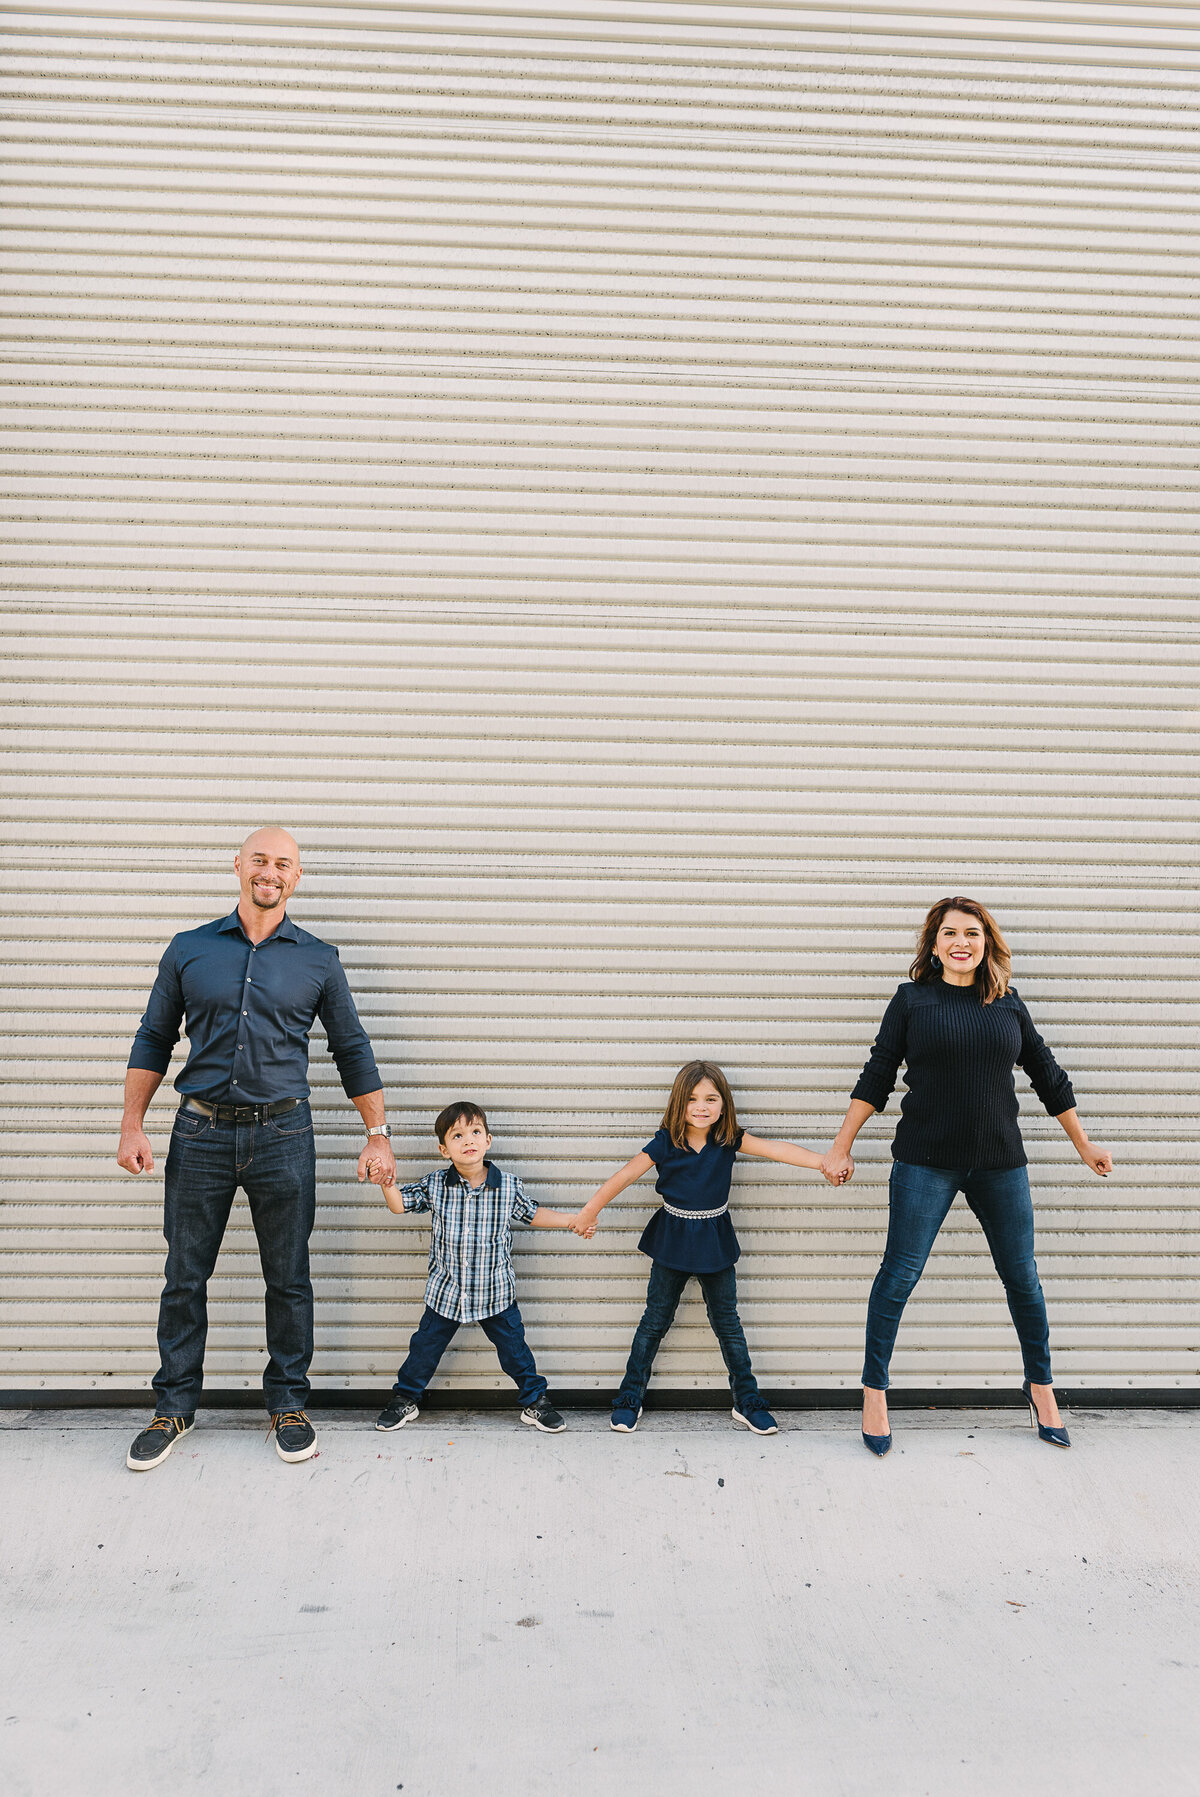 Encinitas Family Photographer-Urban fun33